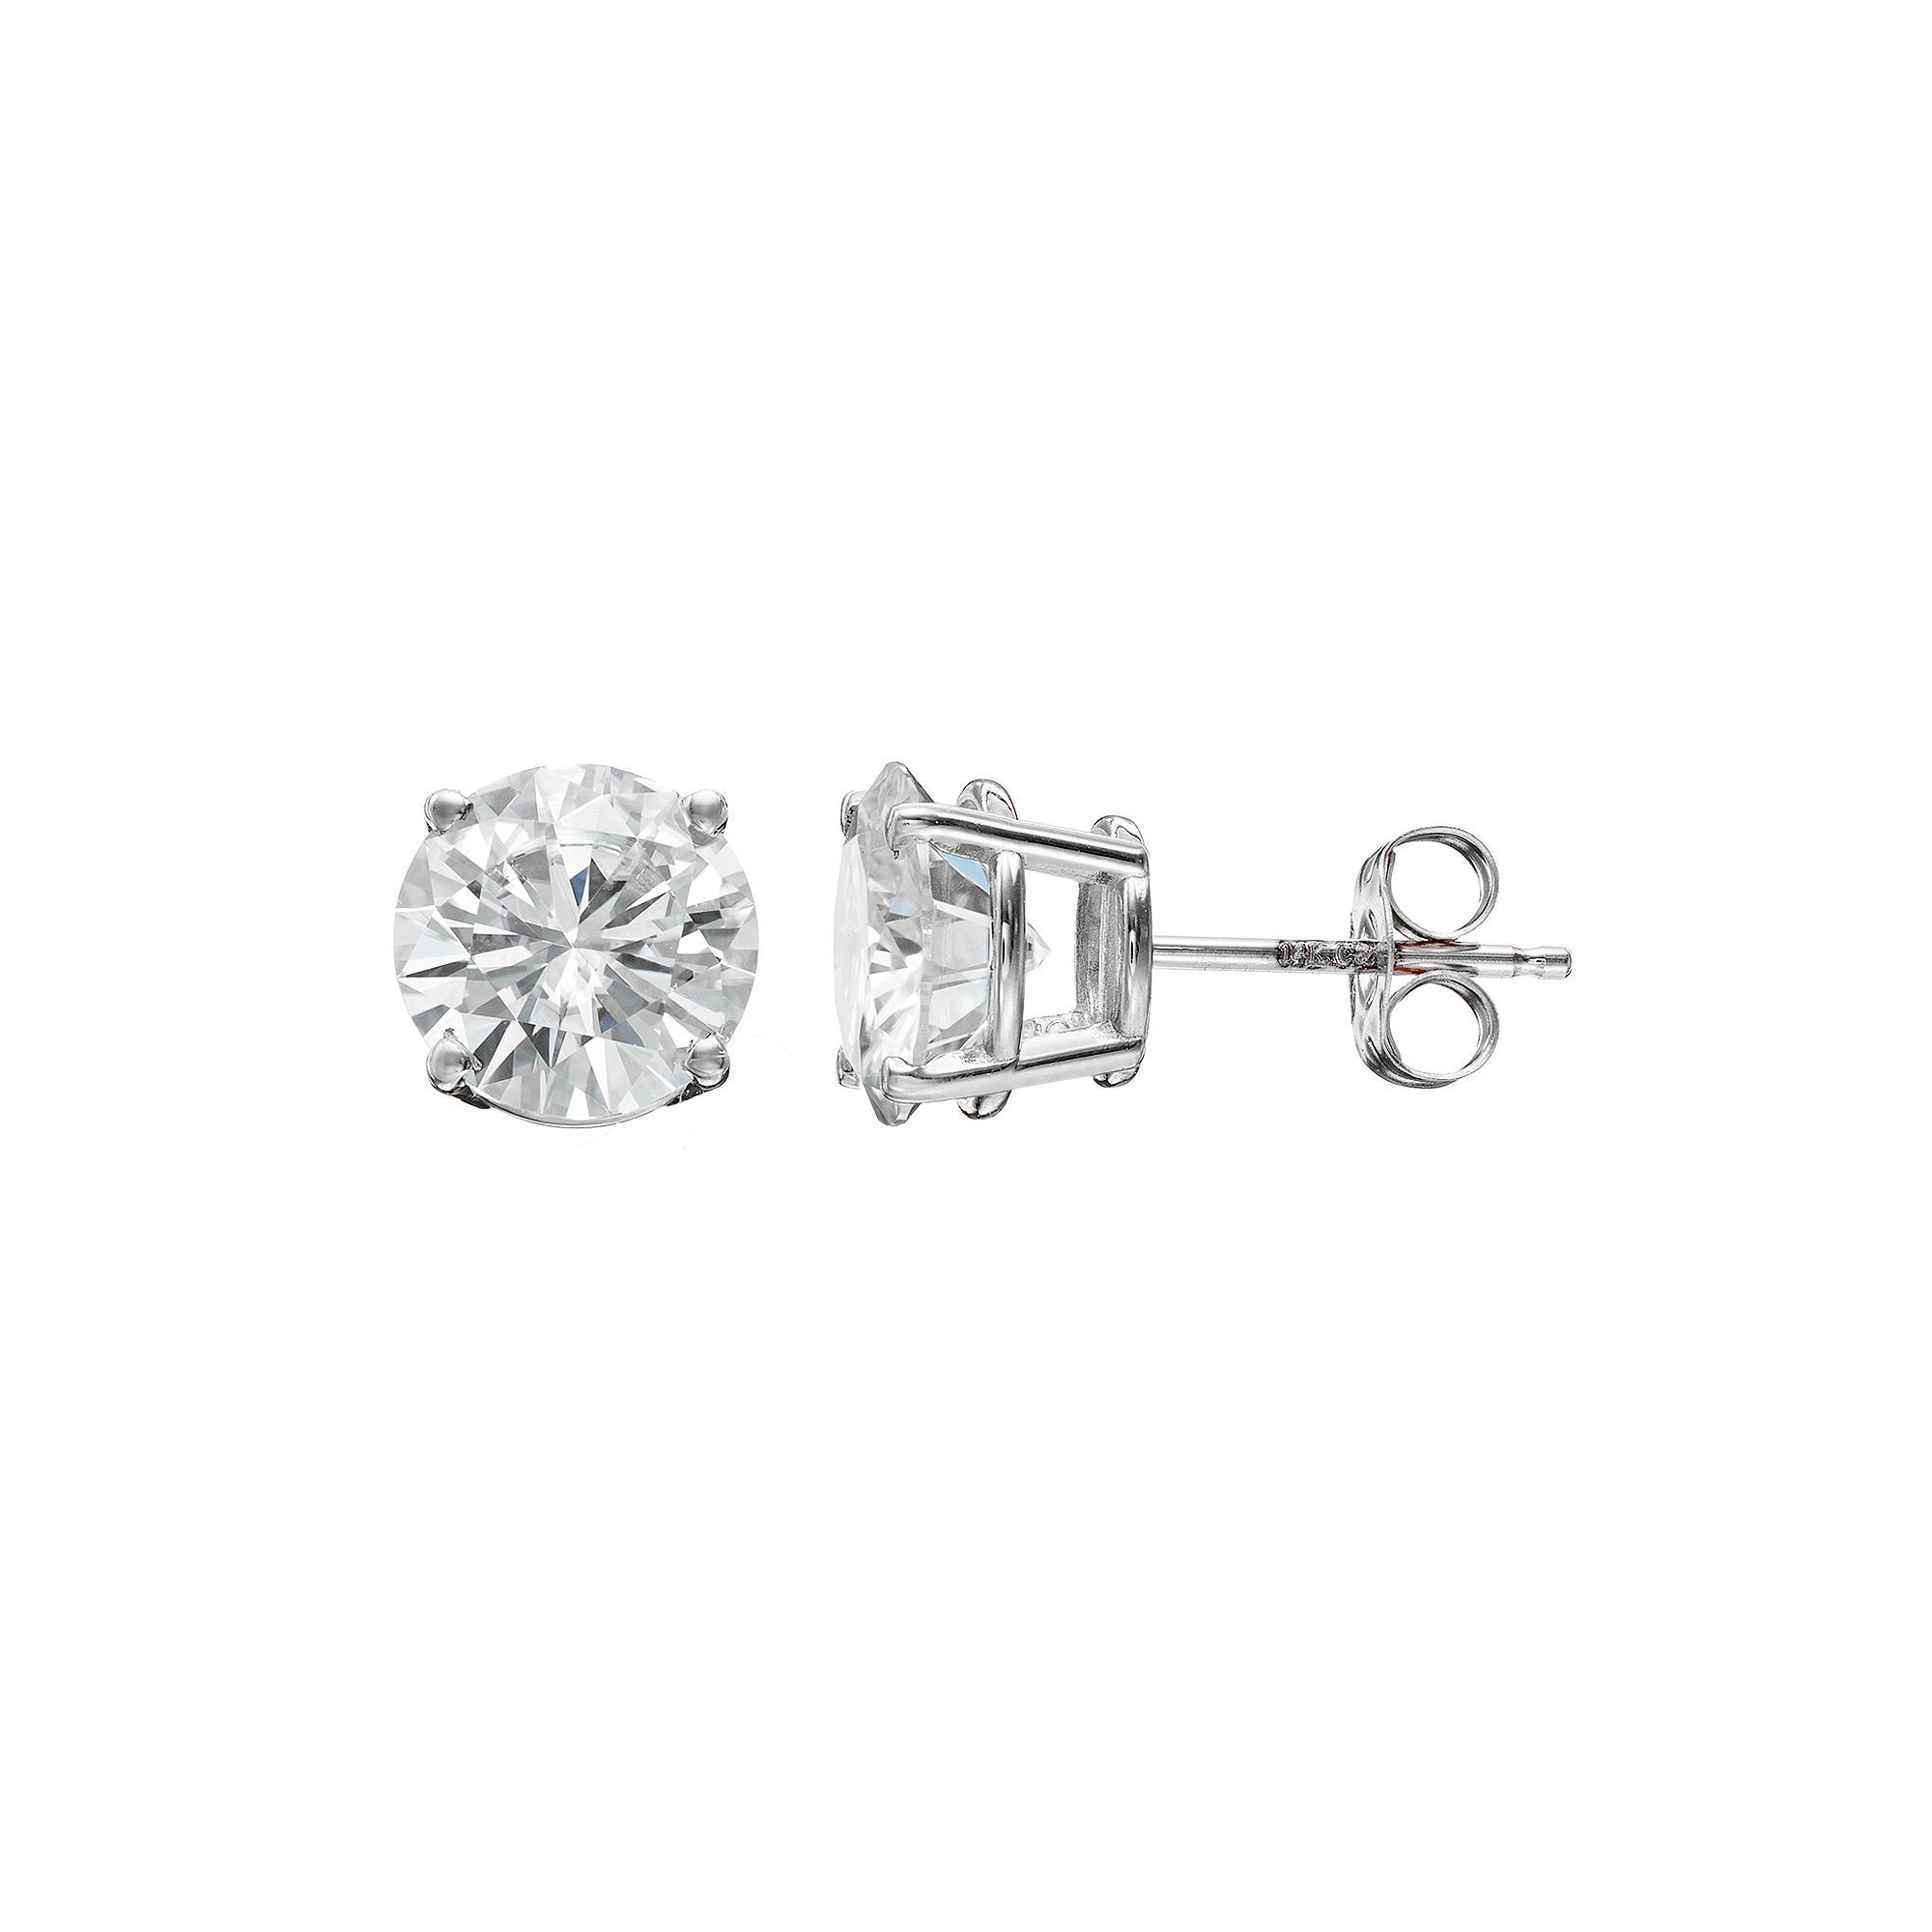 s earrings icky are moissanite nails topic let lets sorry my your see